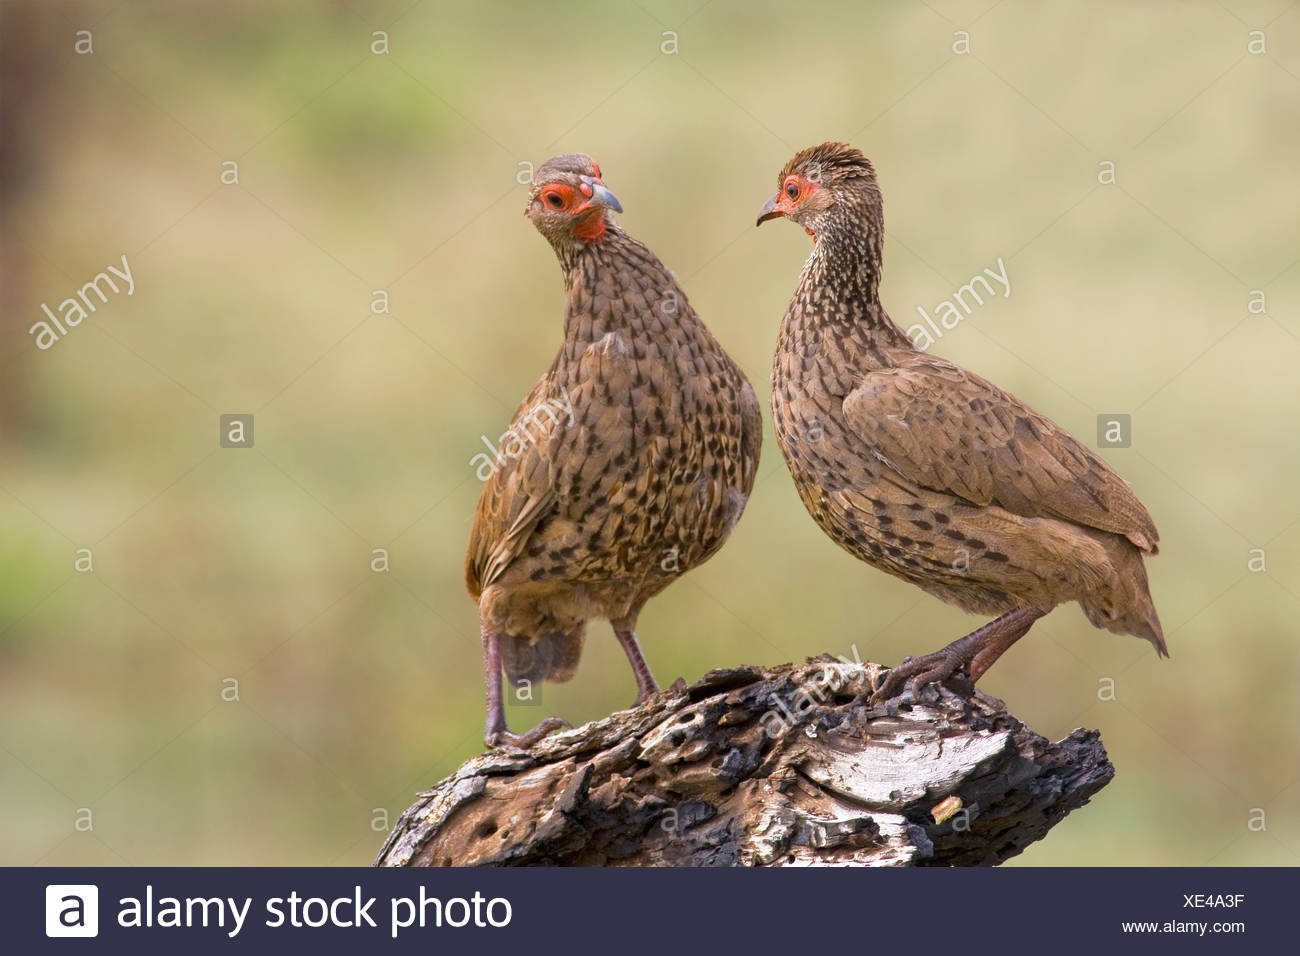 Shallow depth-of-field photograph of two Swainson's spurfowl (Francolinus swainsonii) squaring up for a fight - Stock Image